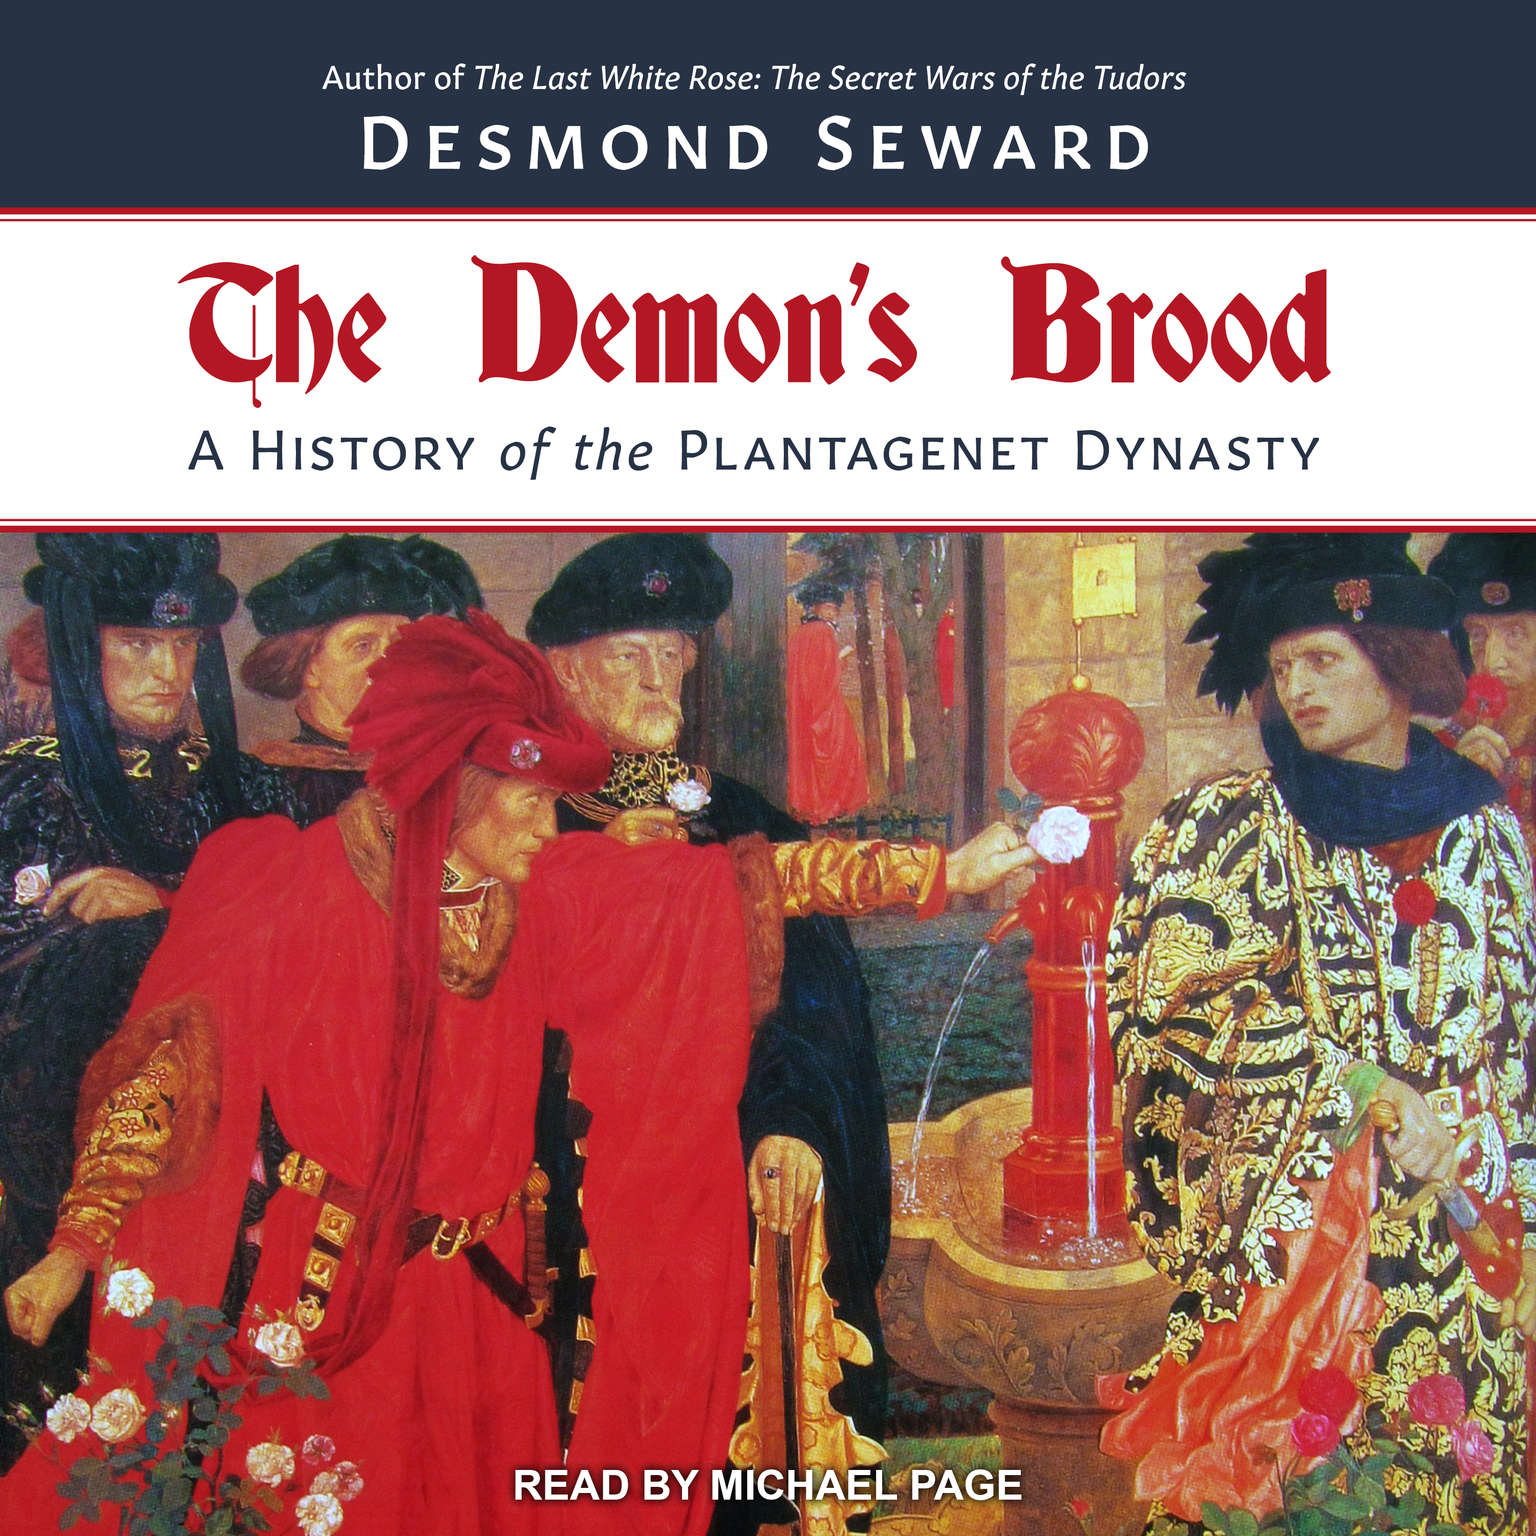 The Demons Brood: A History of the Plantagenet Dynasty Audiobook, by Desmond Seward